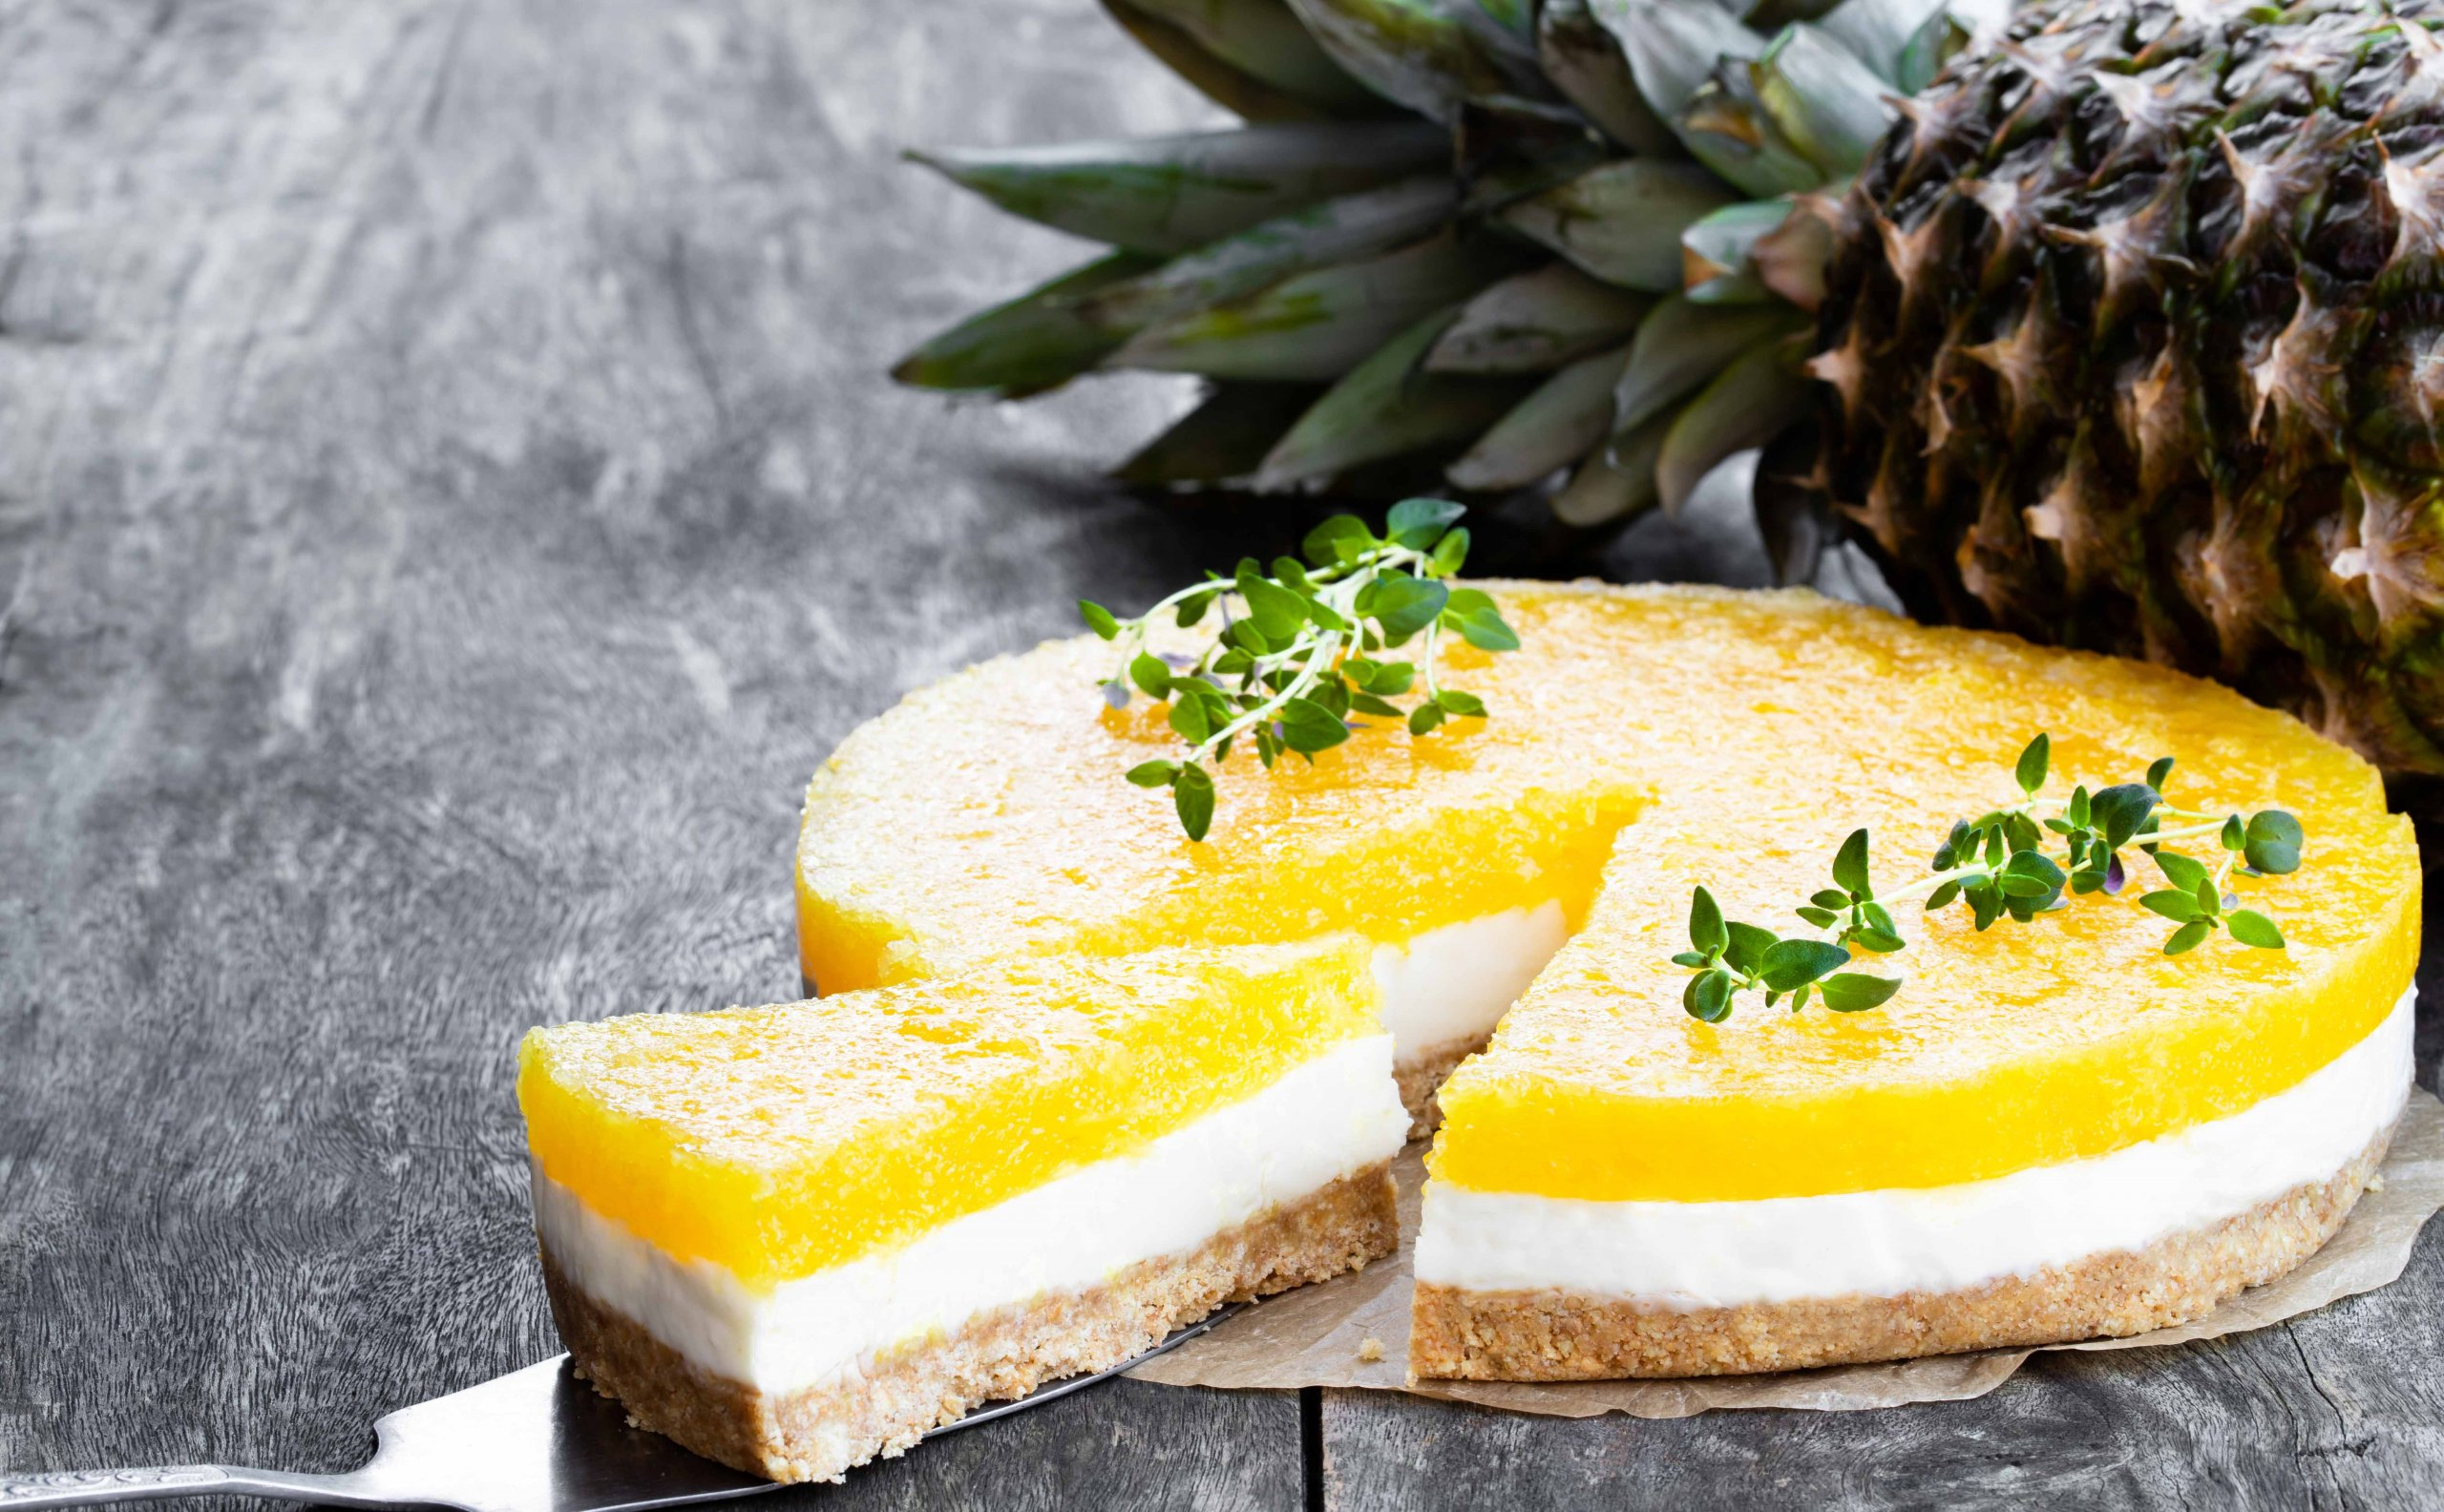 Mascarpone & pineapple cheesecake